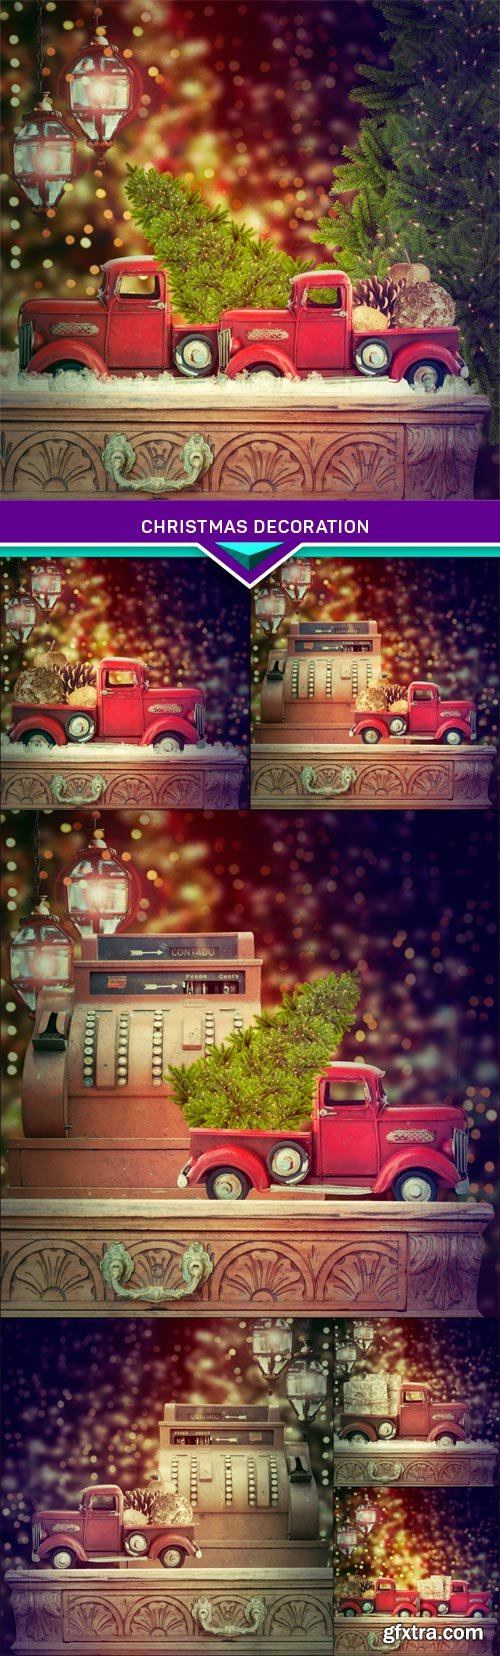 Old antique toy truck carrying christmas decoration 7x JPEG